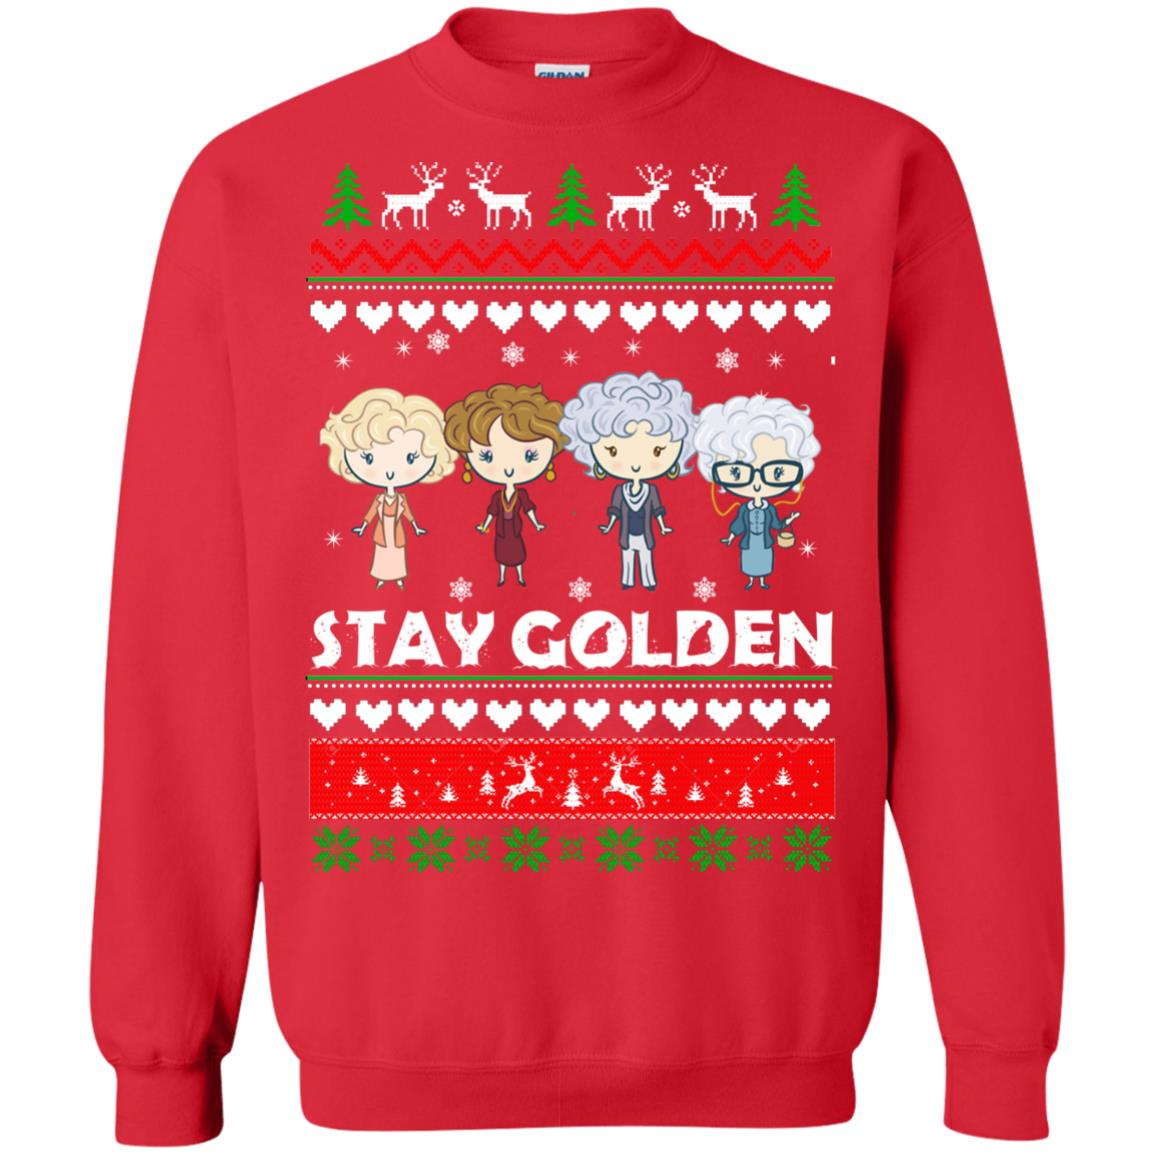 image 707 - Golden Girls Stay Golden Ugly Christmas Sweater, Hoodie